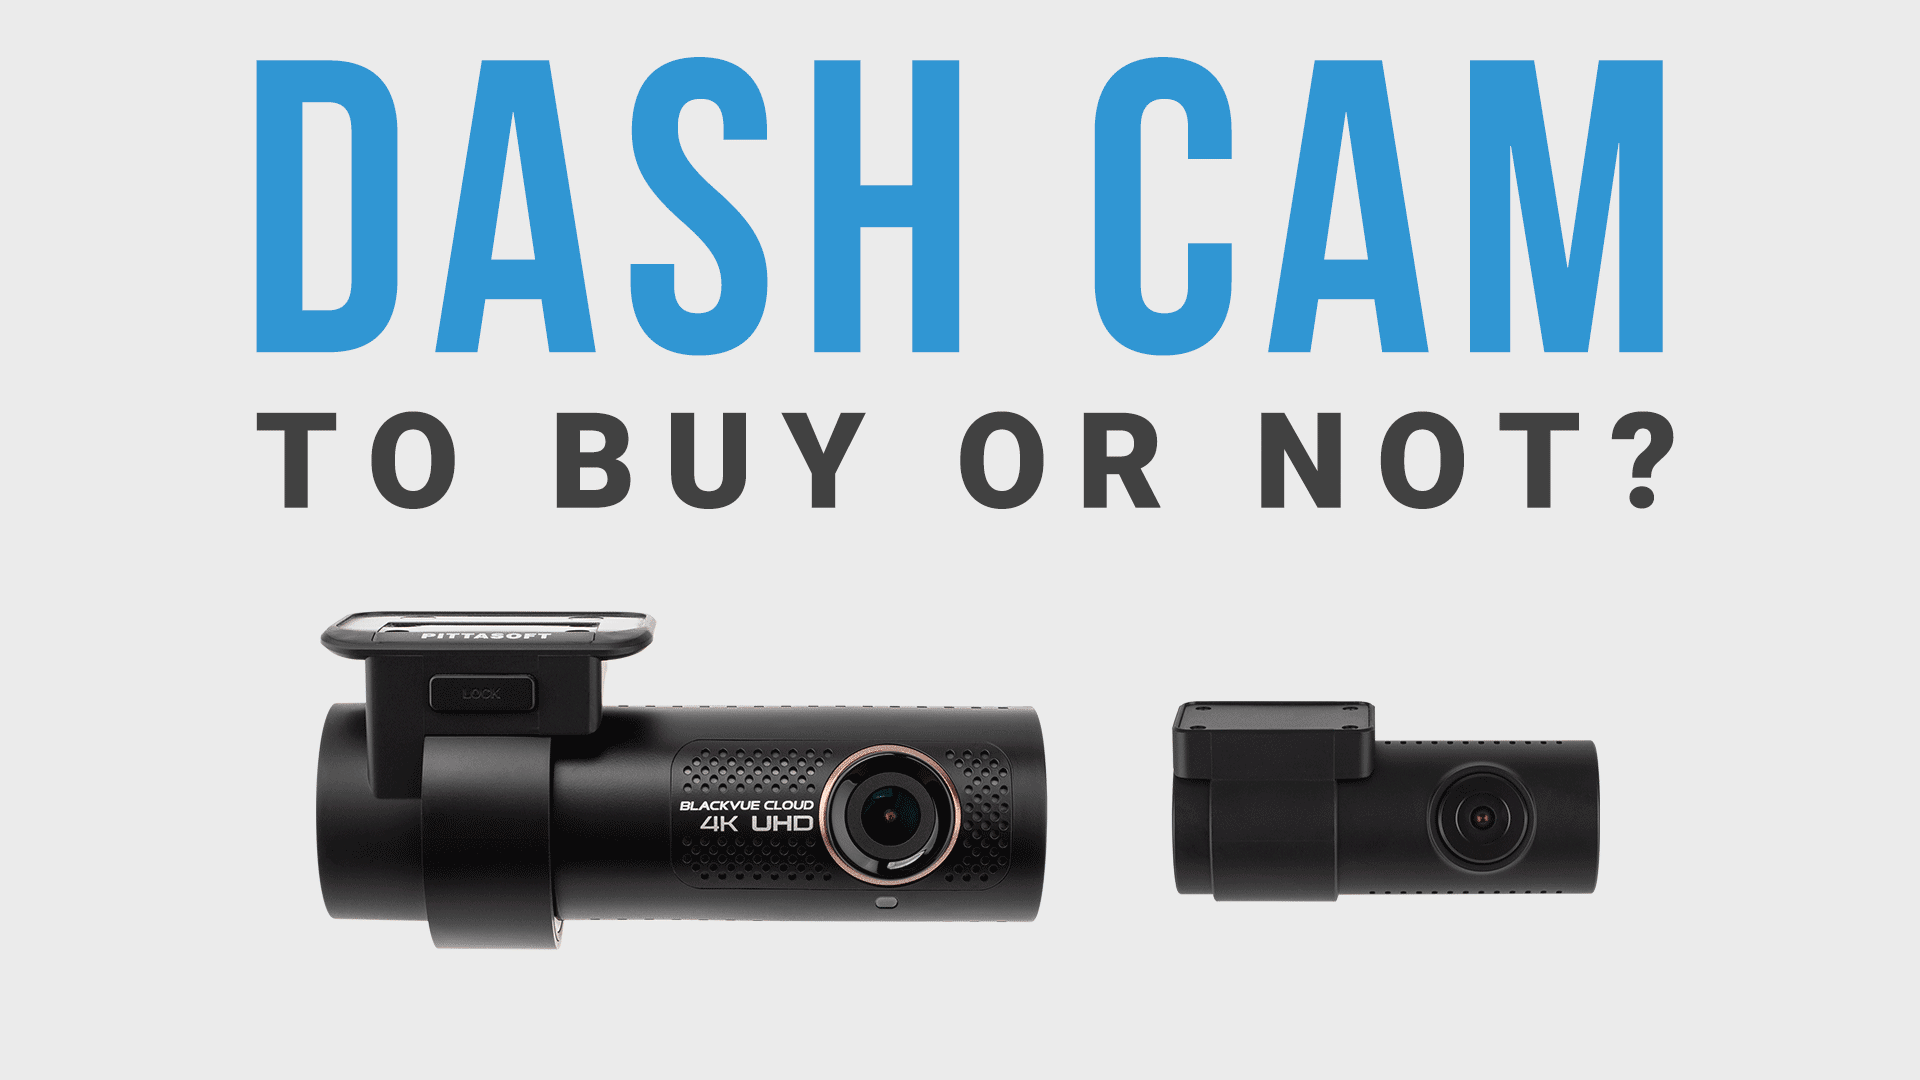 Dashcam – To Buy Or Not